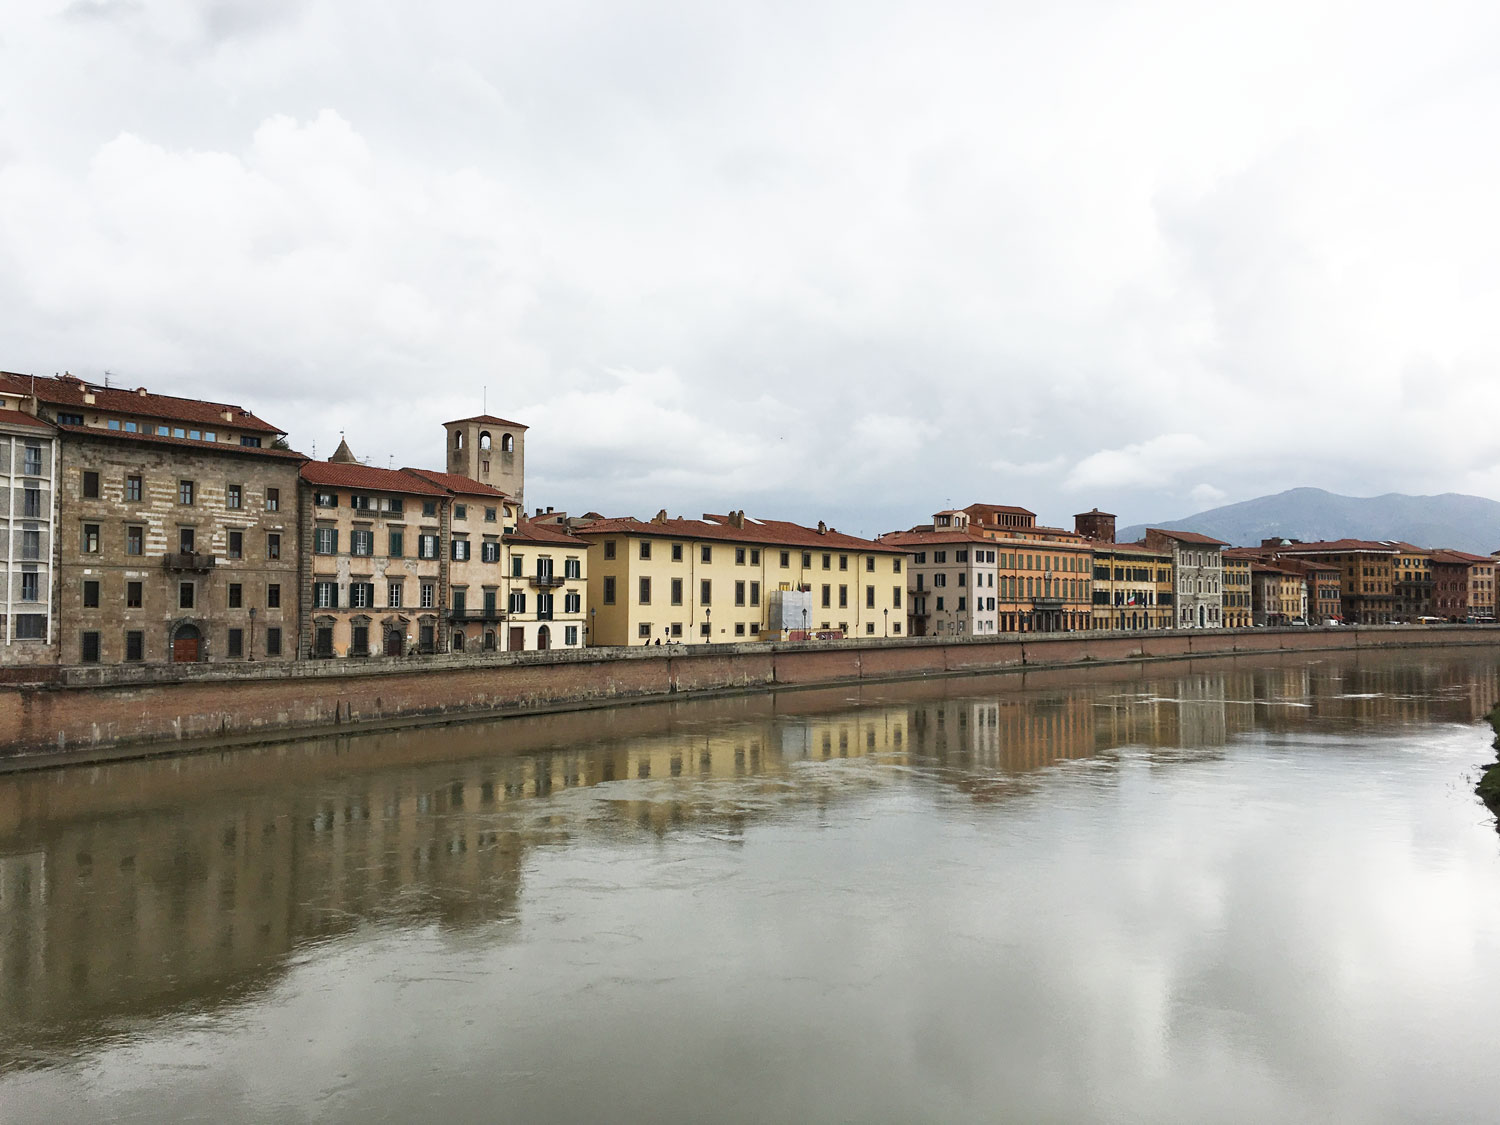 PisaView along the Arno River, Pisa